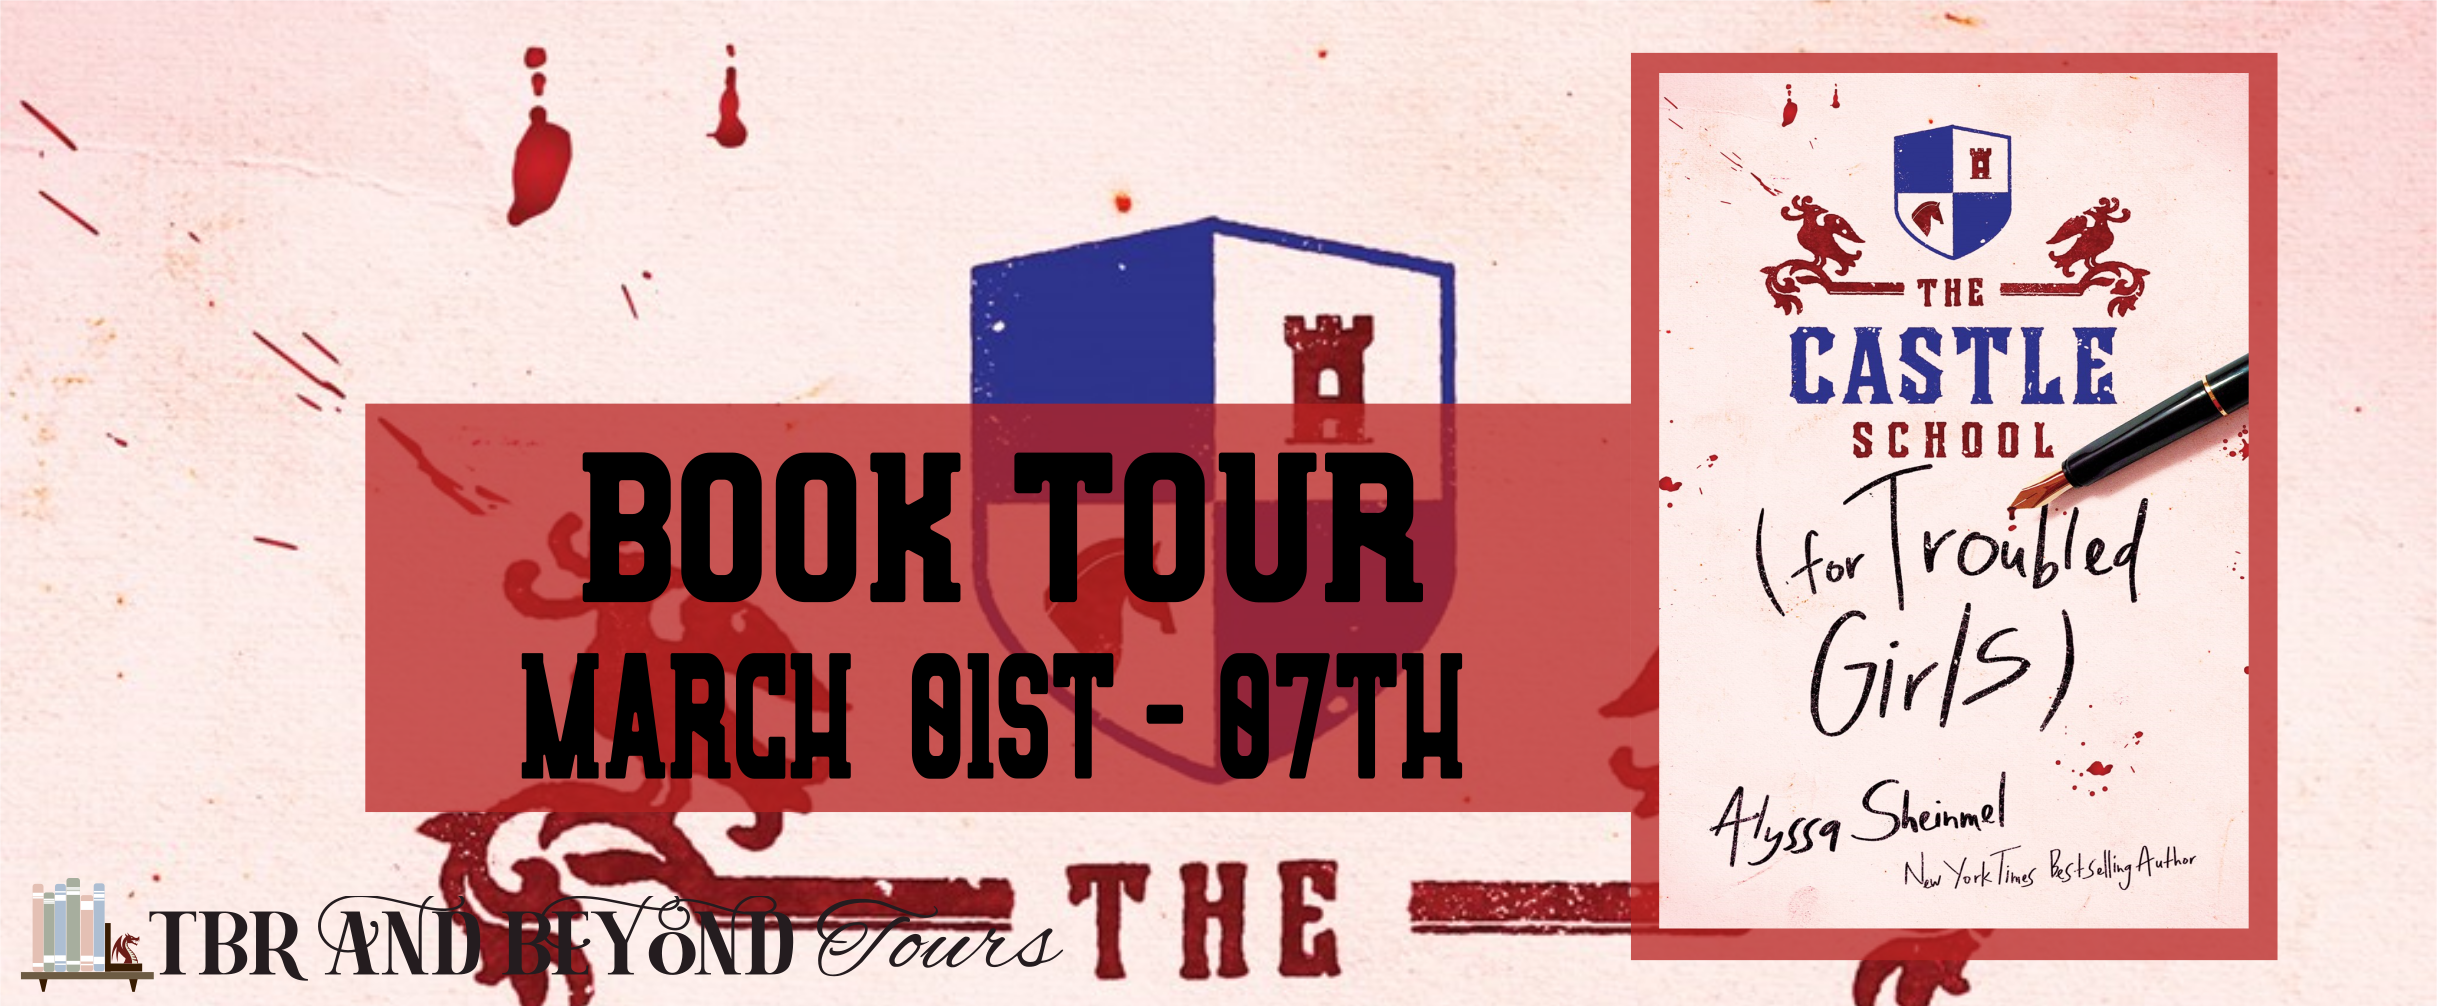 The Castle School (for Troubled Girls) tour banner